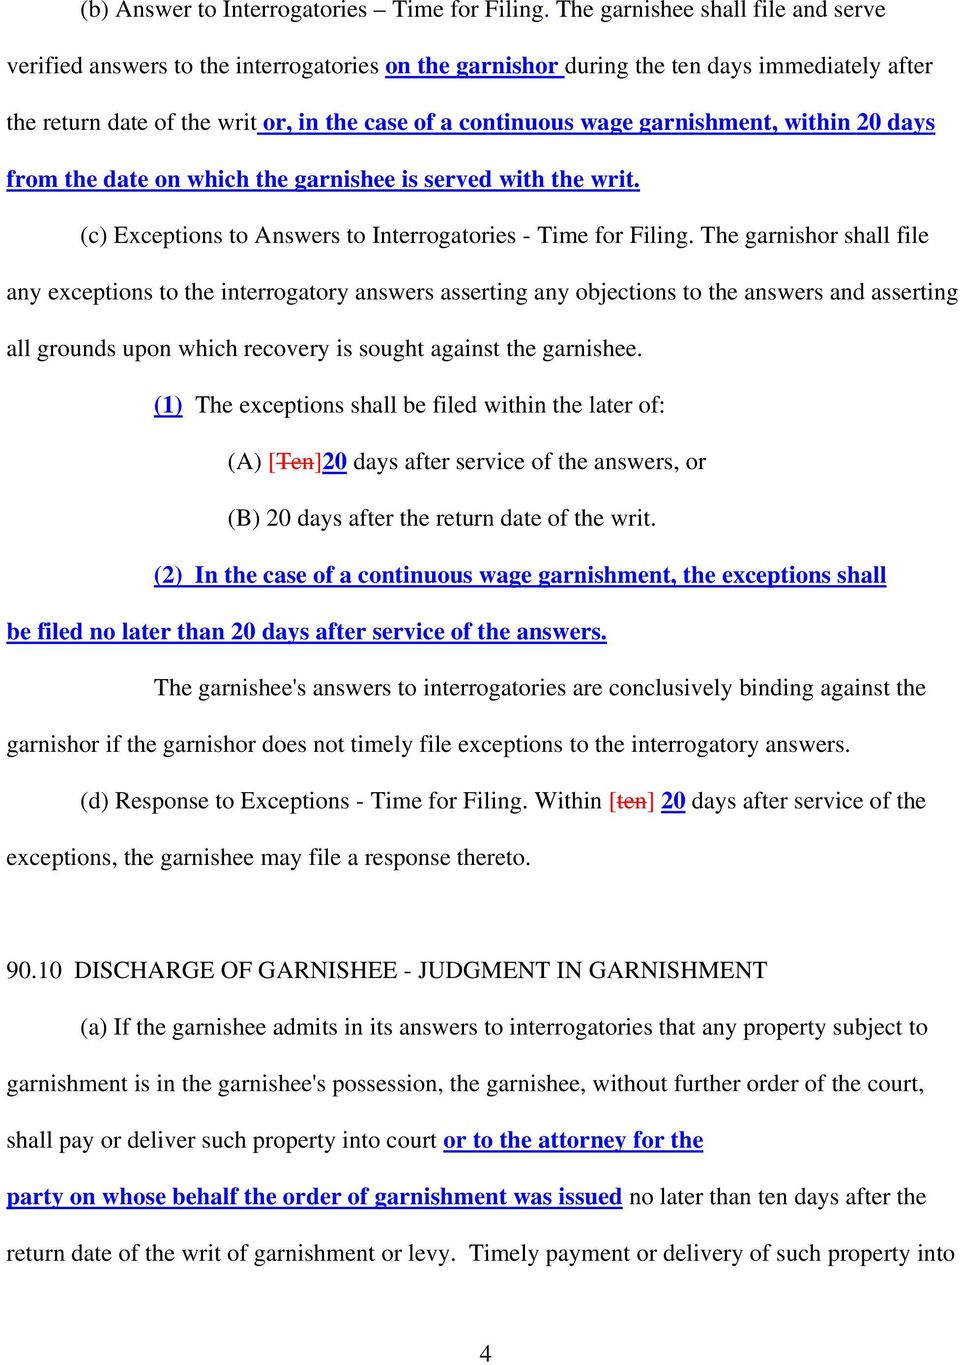 garnishment, within 20 days from the date on which the garnishee is served with the writ. (c) Exceptions to Answers to Interrogatories - Time for Filing.